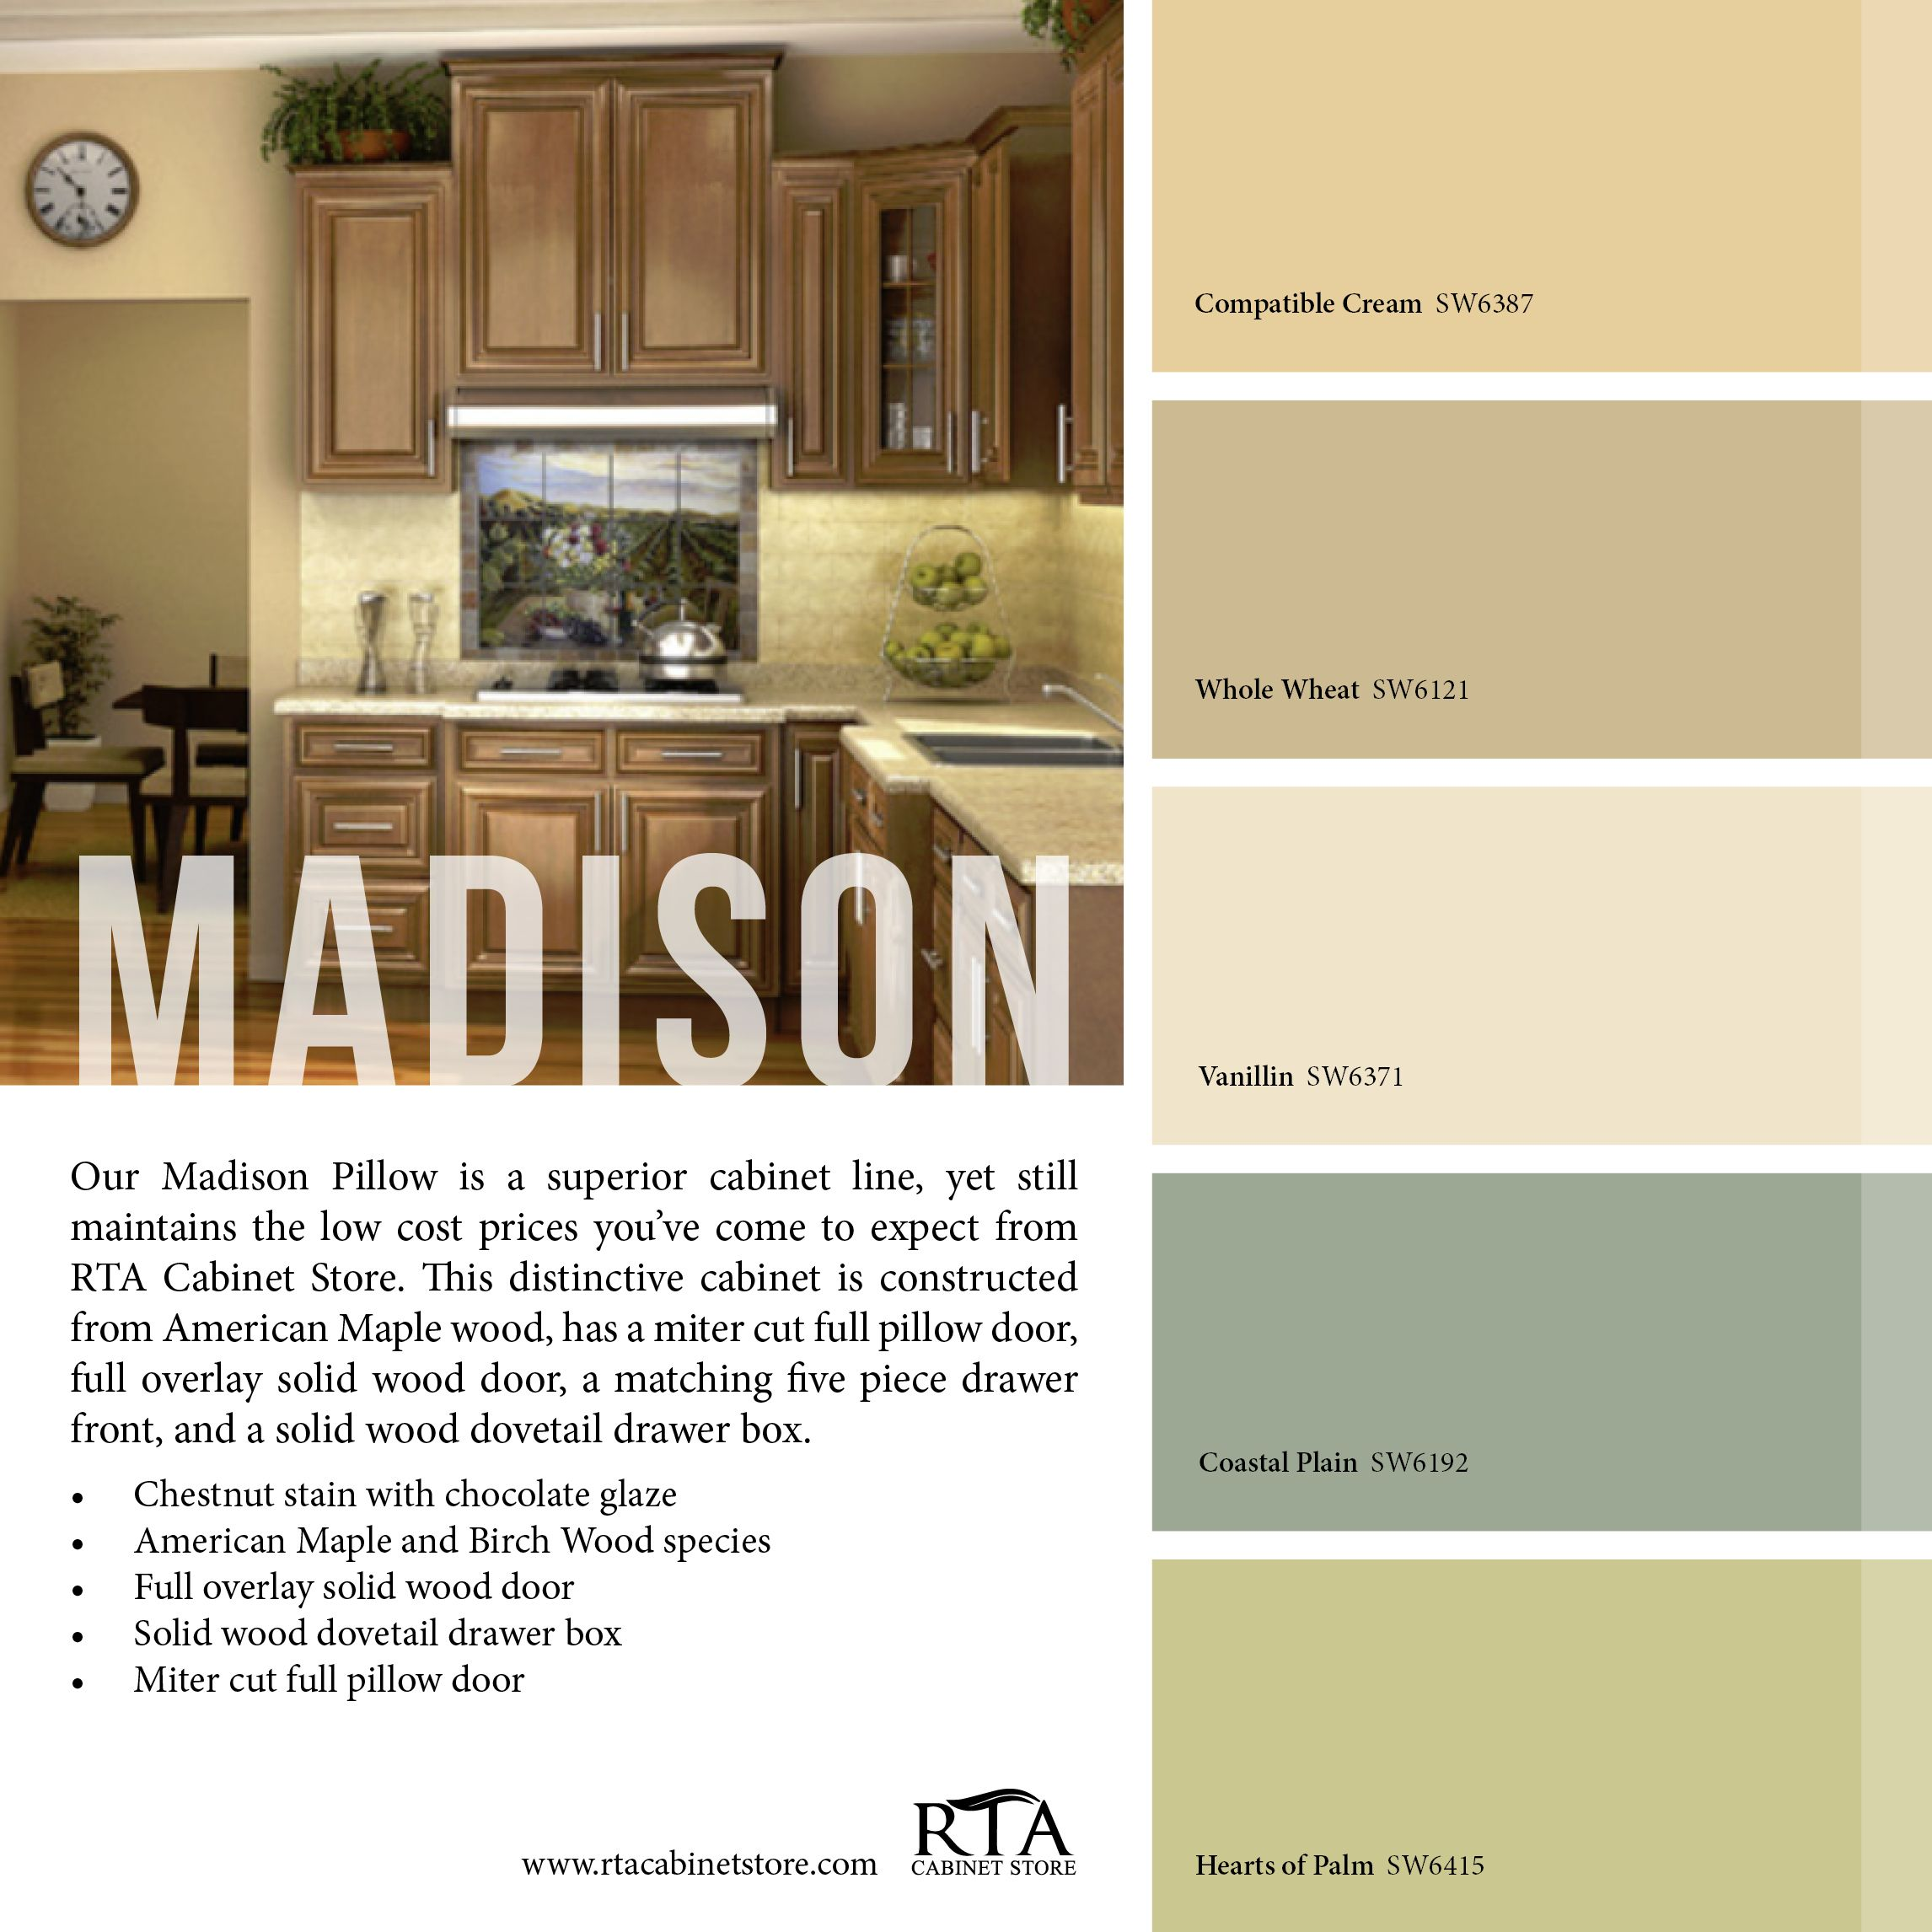 Color palette to go with our madison pillow kitchen cabinet line